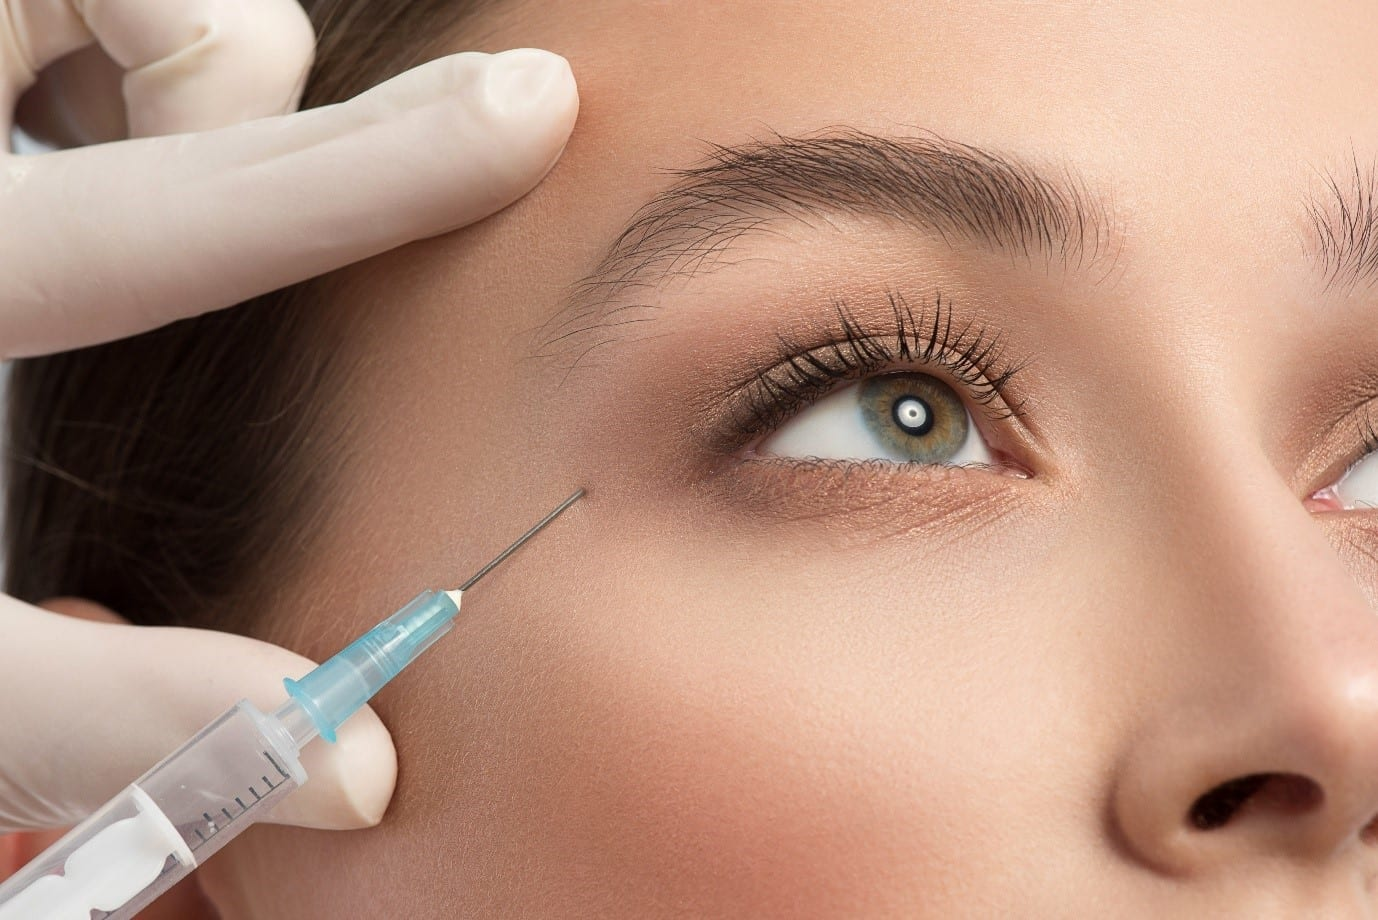 A Beautiful Woman Getting Anti-Wrinkle Injections